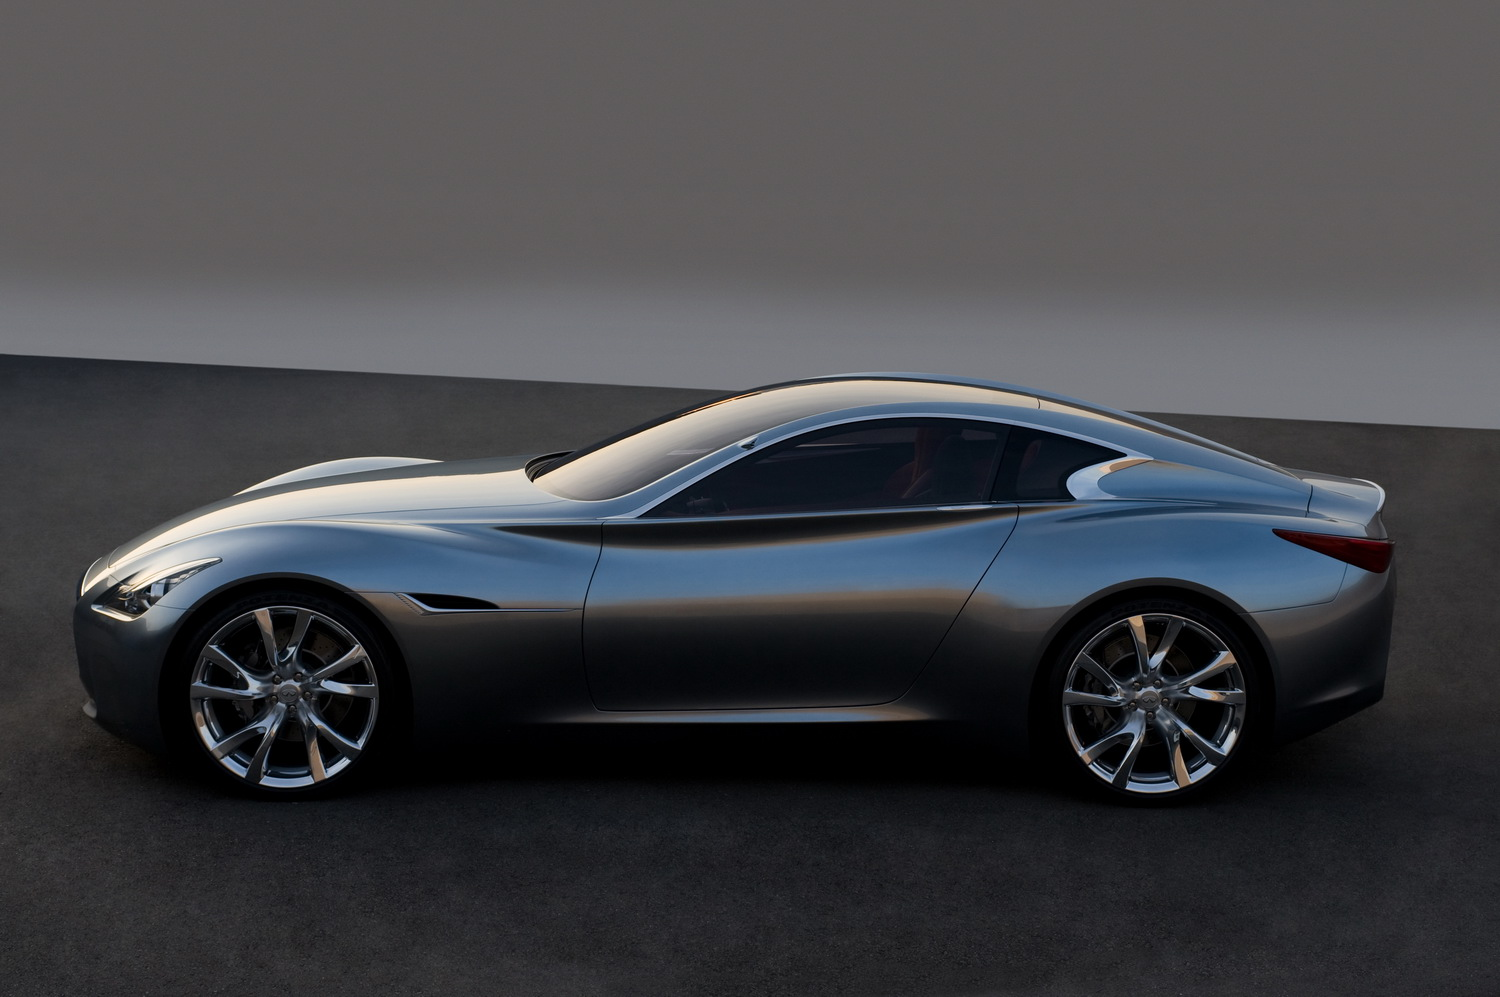 Top page gt gt infinite - Explore Infinity Auto Design And More Infiniti Essence Hybrid Gt